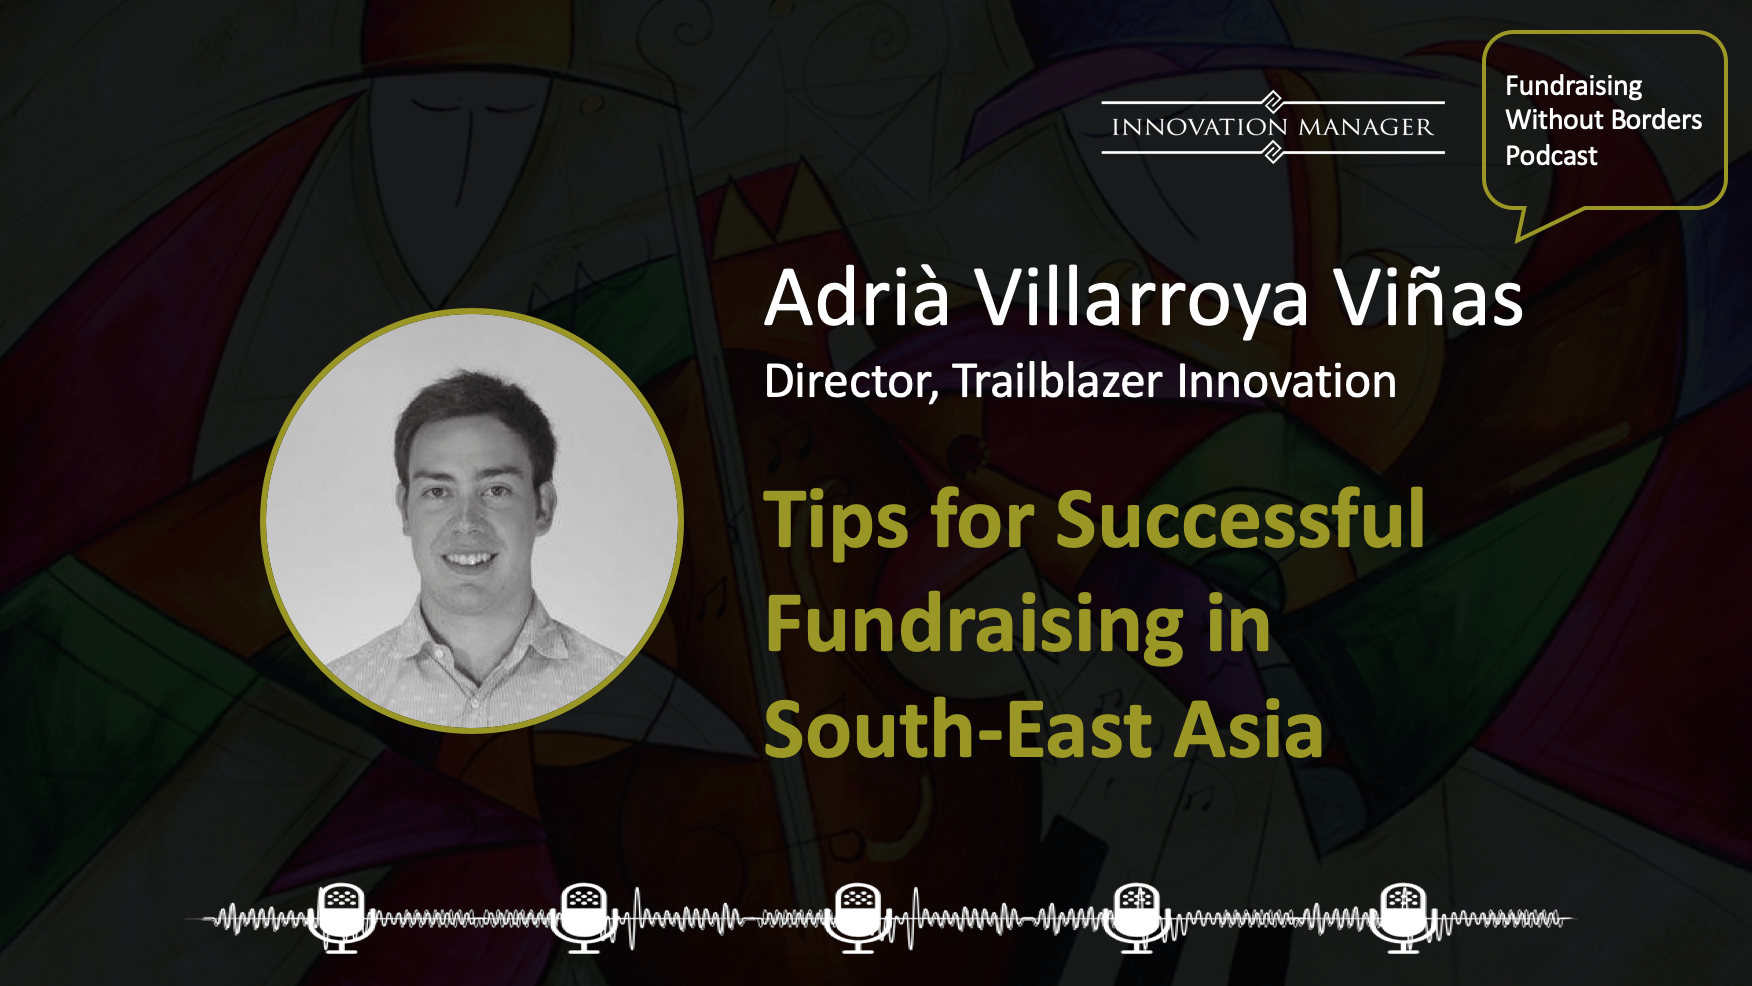 Tips for Successful Fundraising in South-East Asia